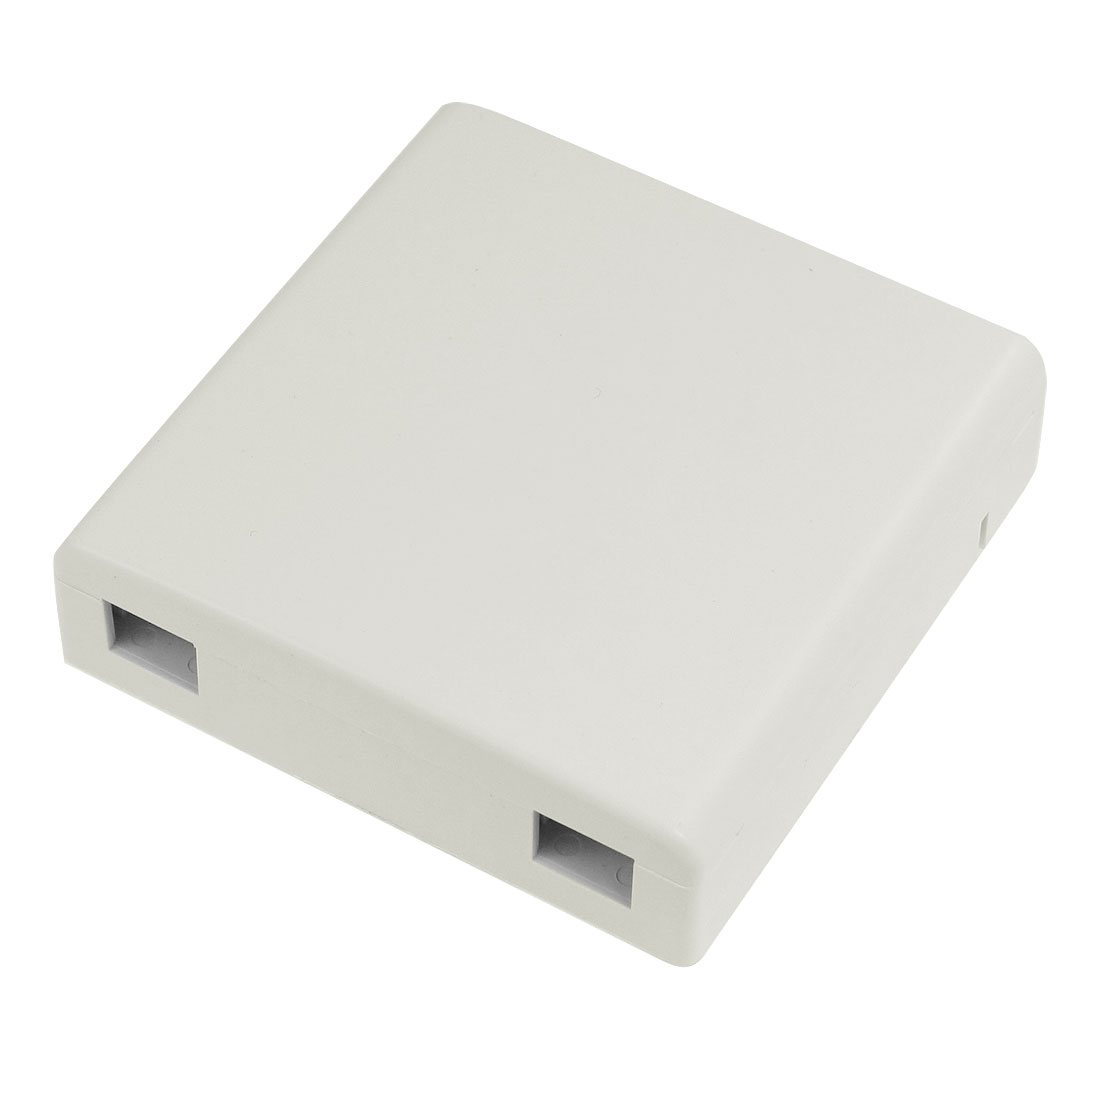 Square Plastic Shell 2 Holes Fiber Optic Terminal Box White